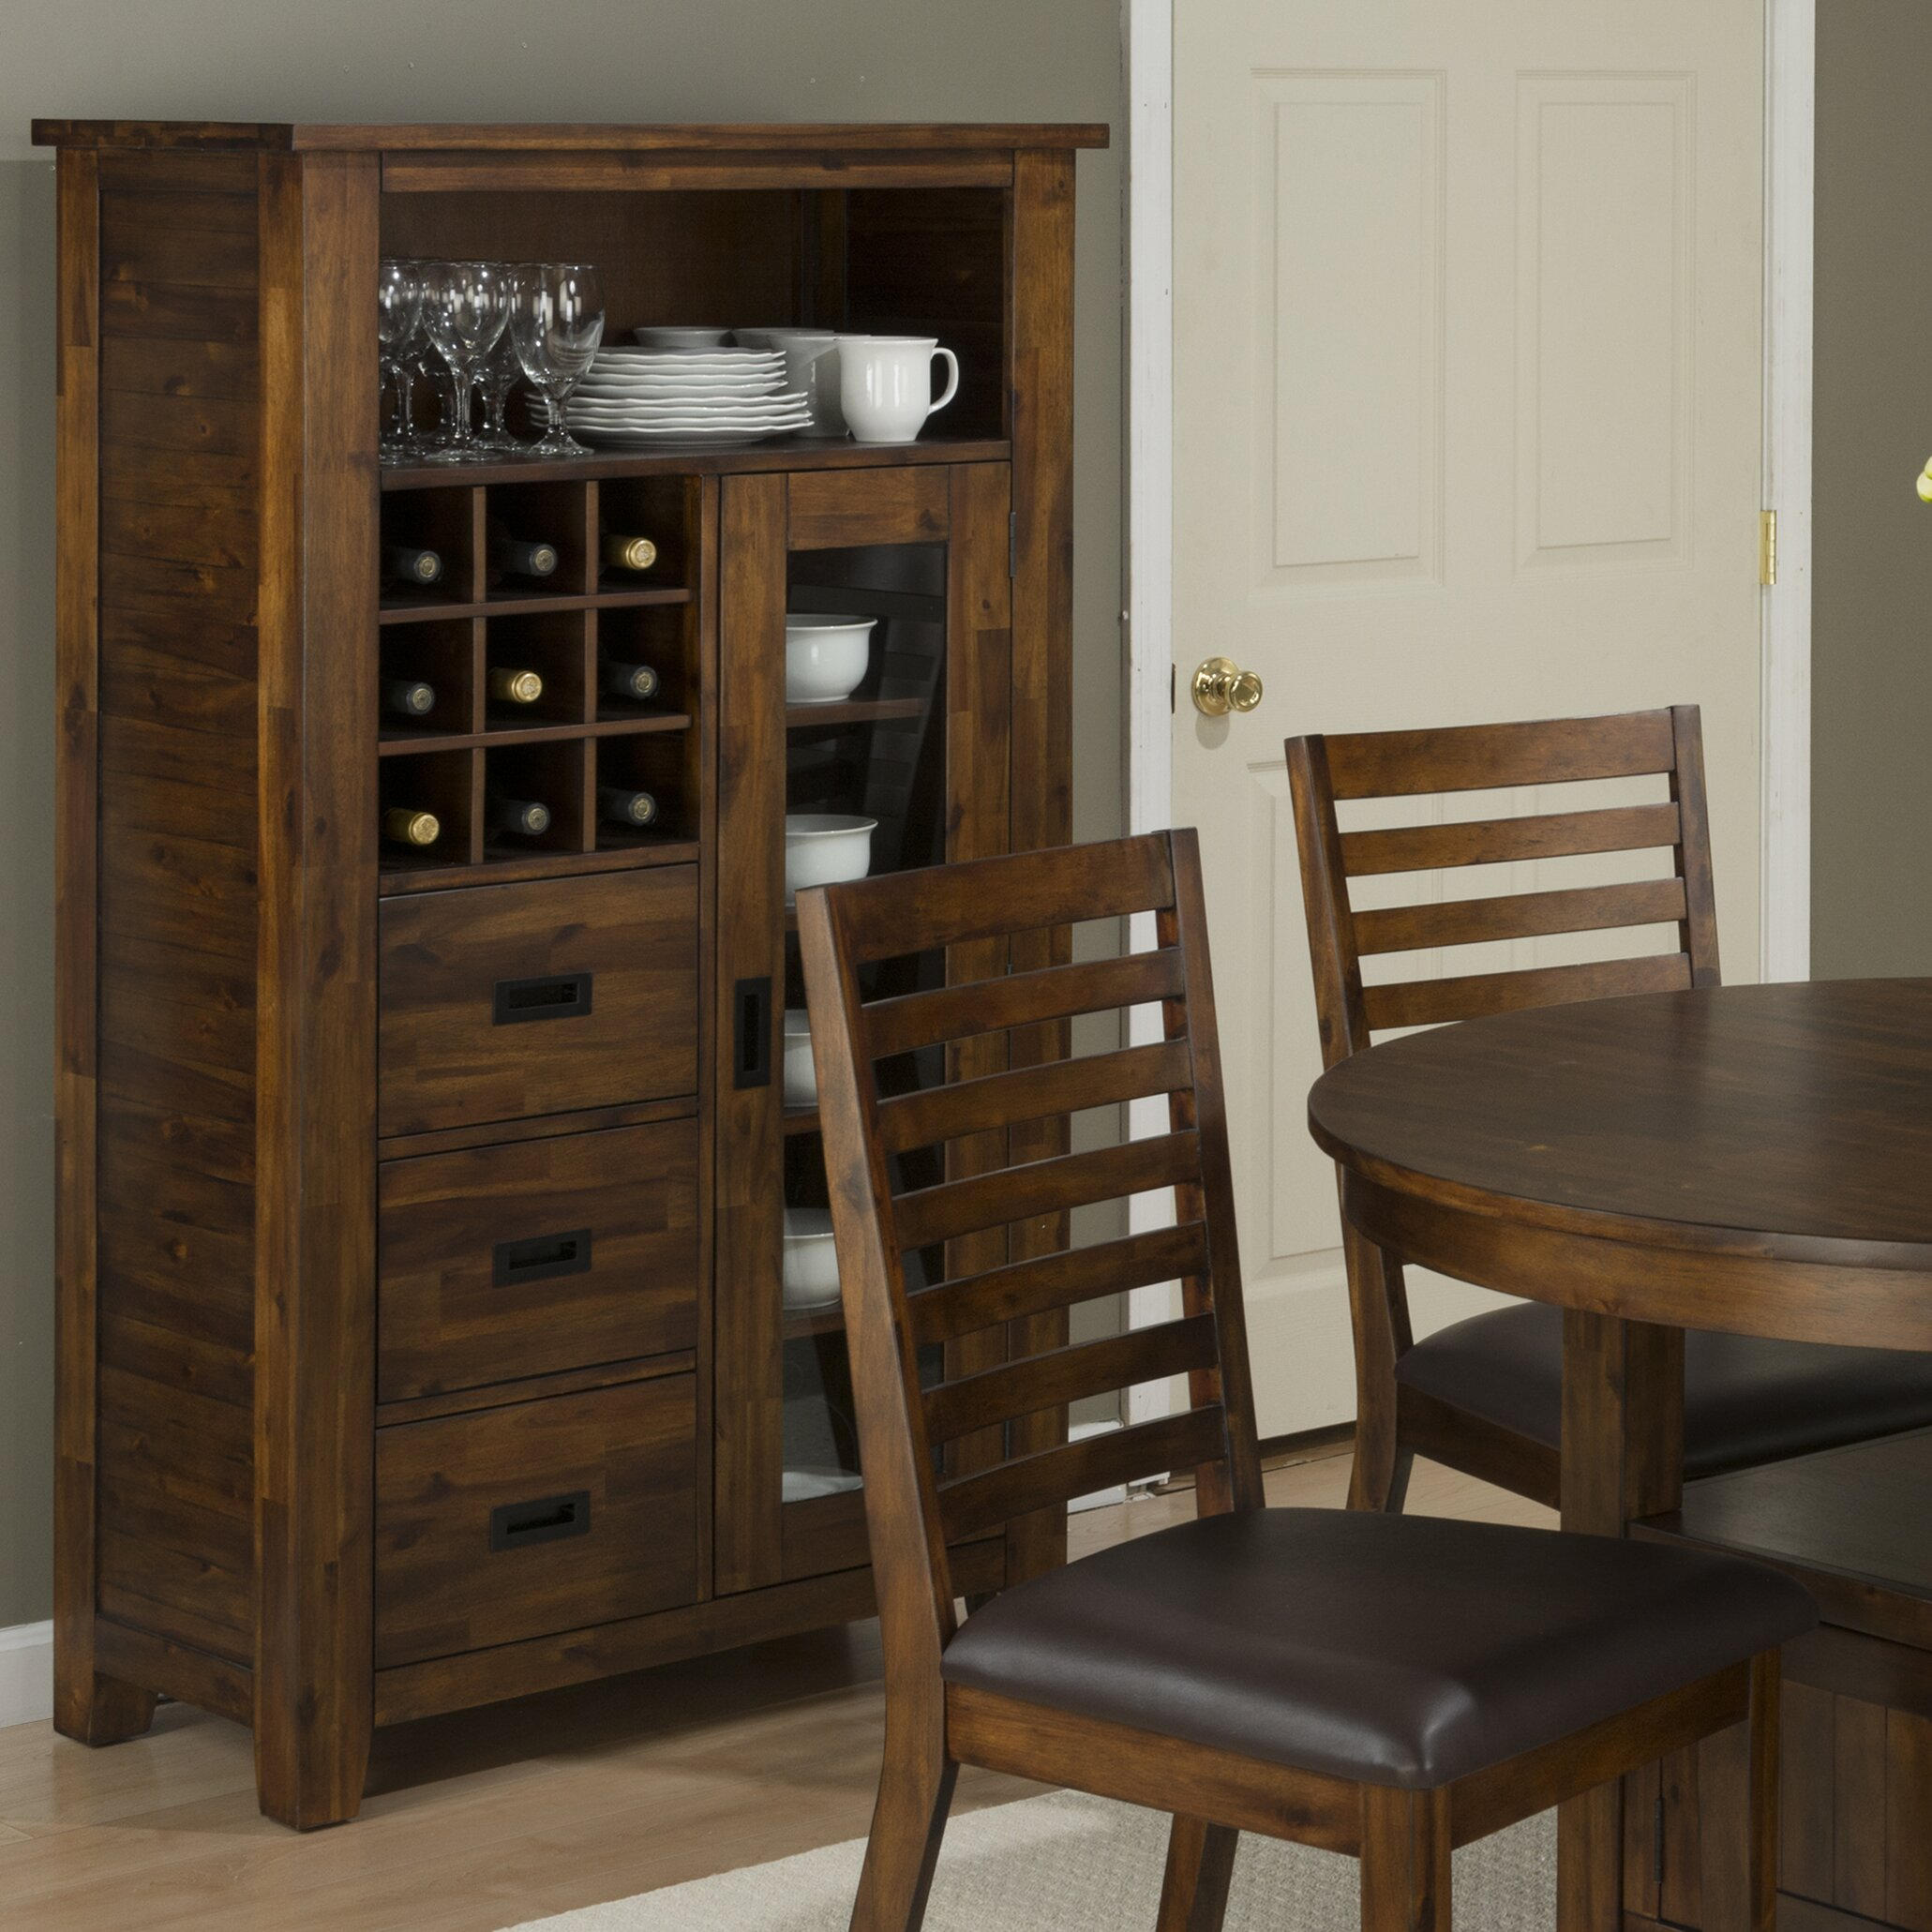 storage in kitchen loon peak oilton kitchen pantry amp reviews wayfair 2556